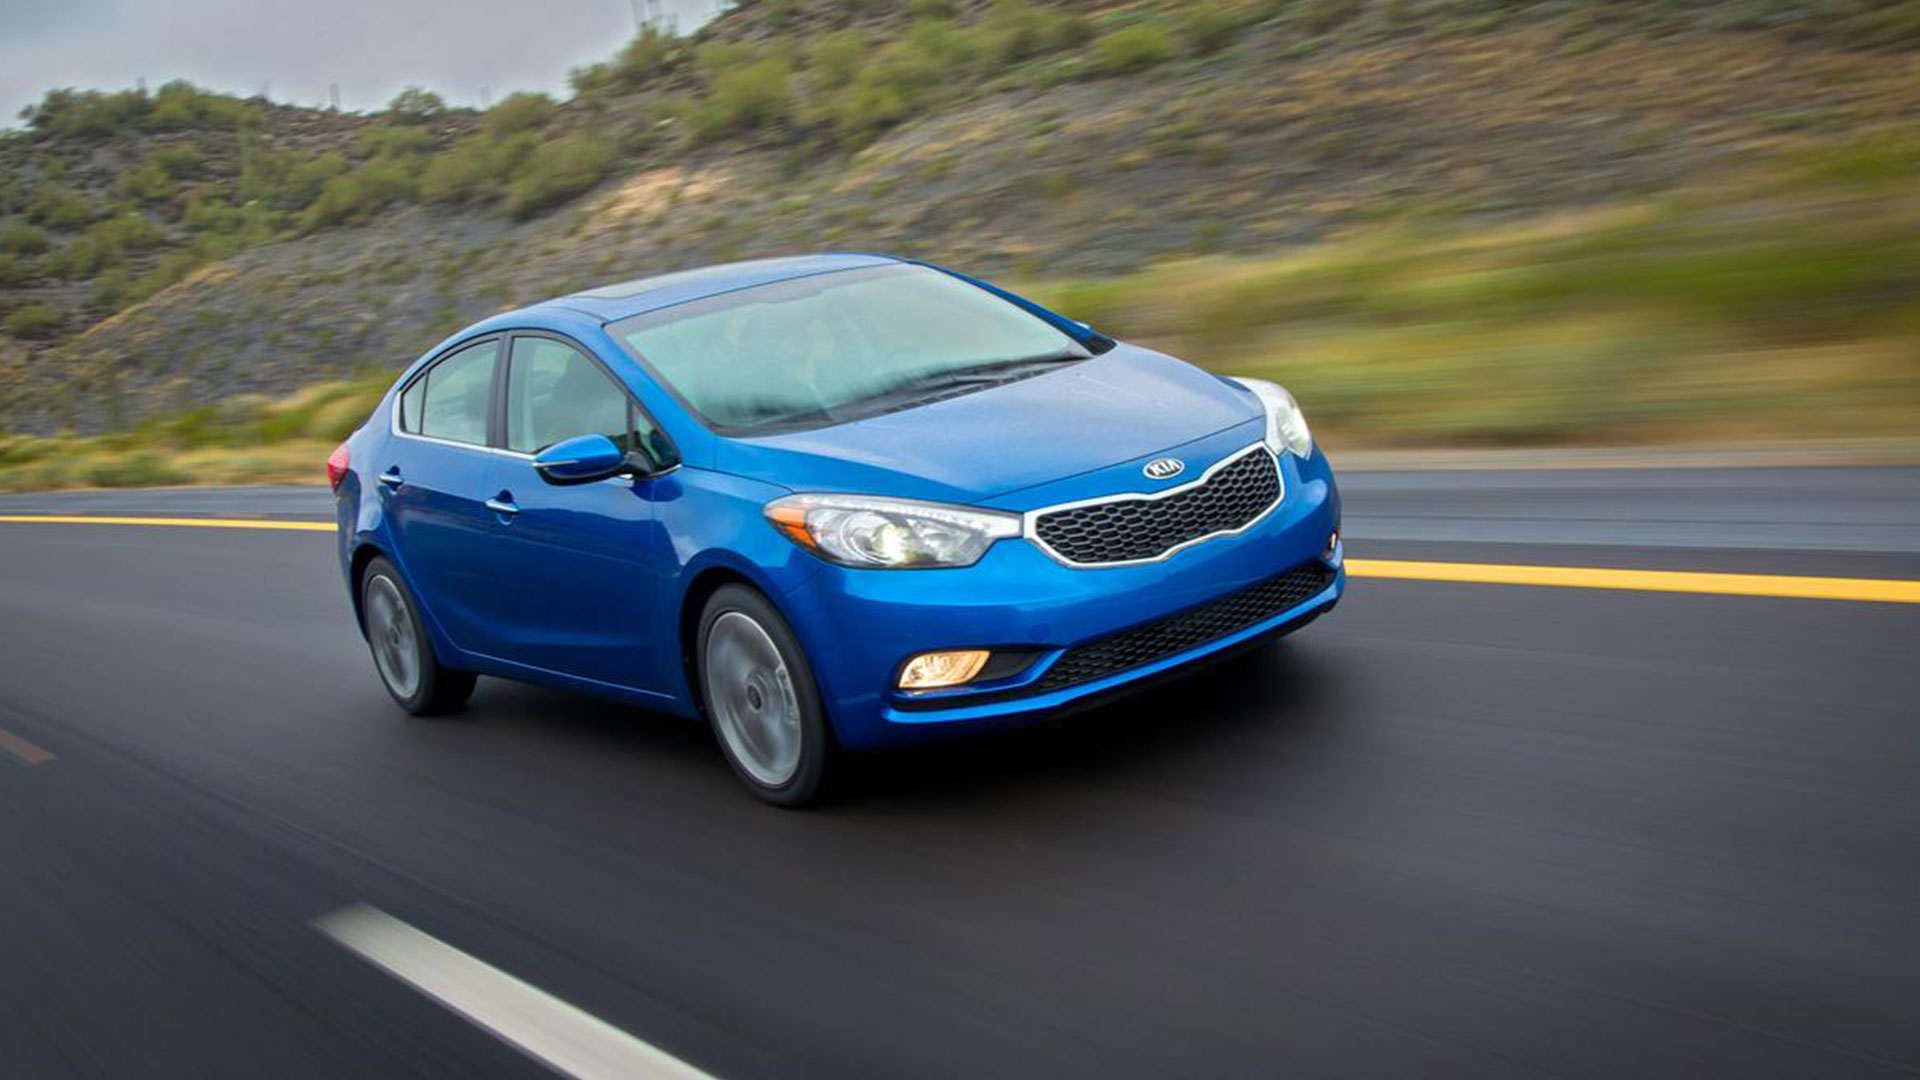 New Kia Forte Lease fers & Best Prices near Manchester NH